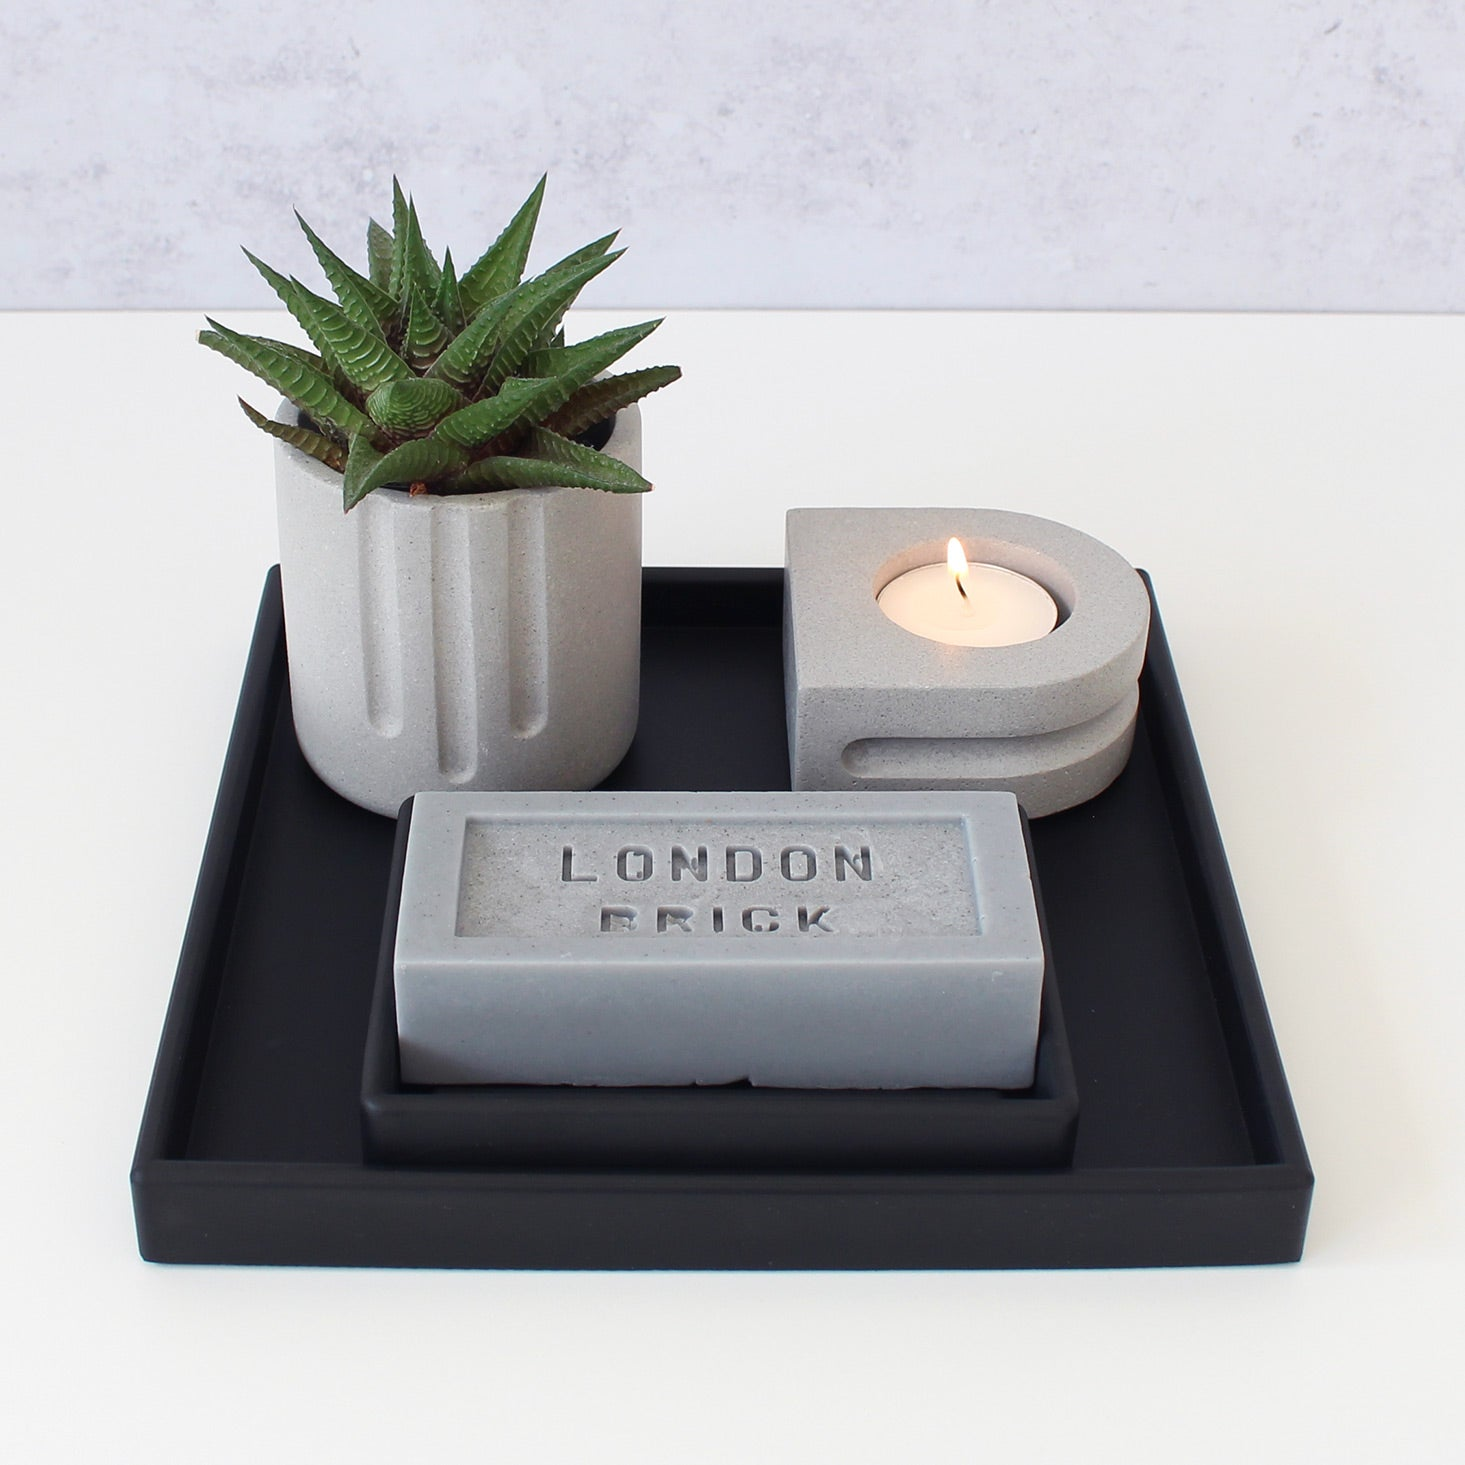 Bathroom tray. Black rubber tray with black rubber soap dish, grey bar soap, lit tealight candle in grey holder, succulent plant in grey pot